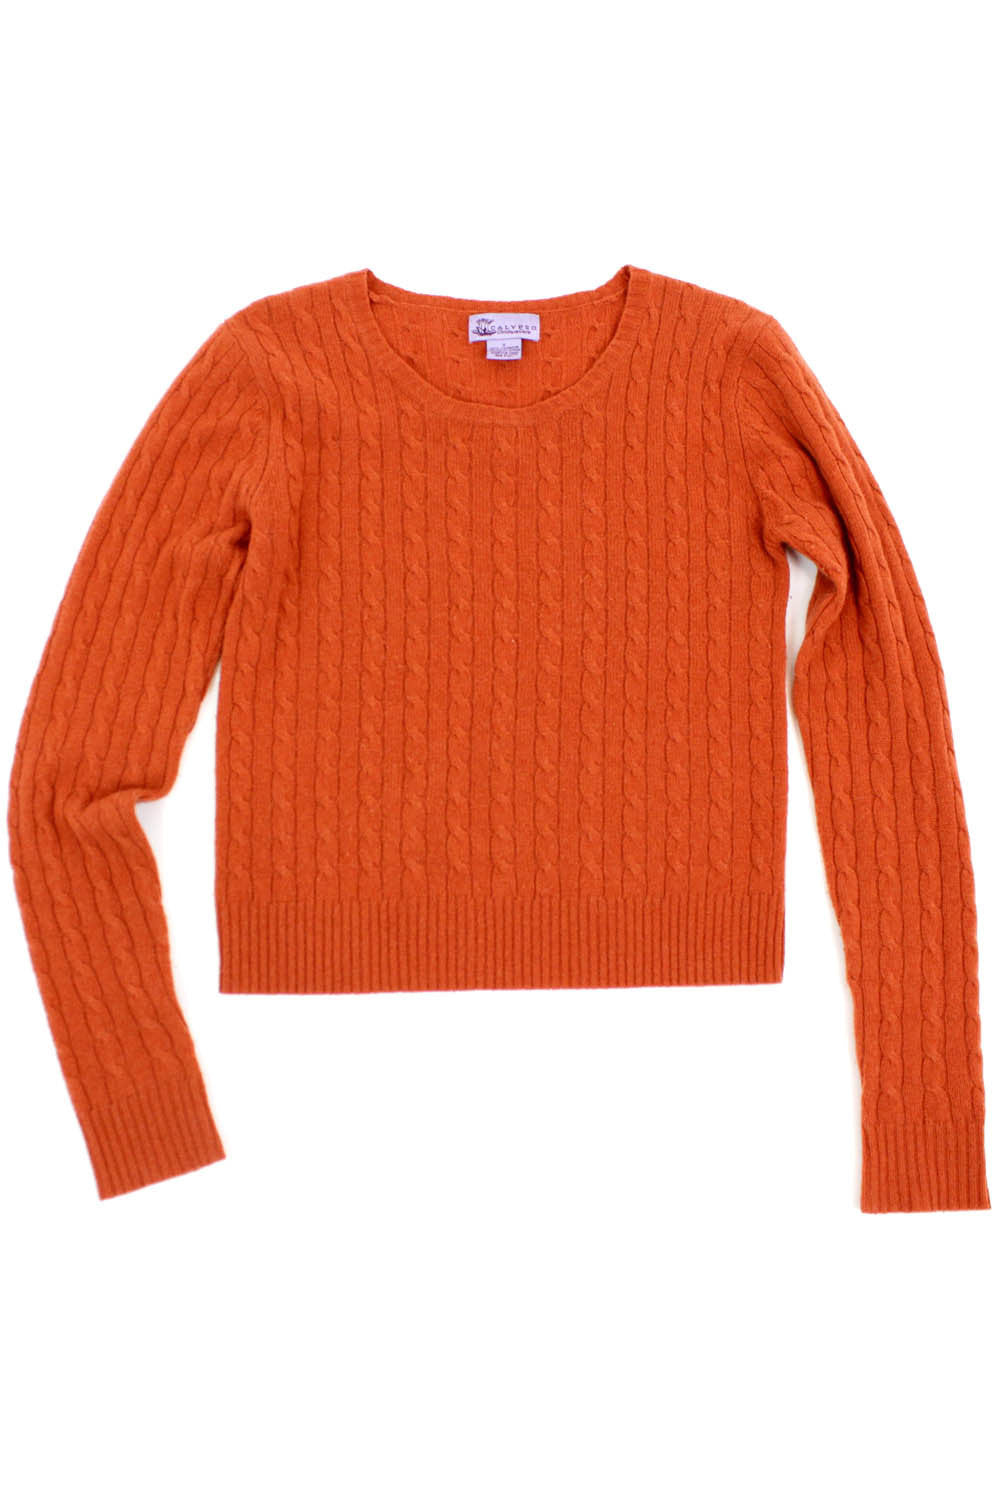 Calypso Christiane Celle cashmere sweater discount